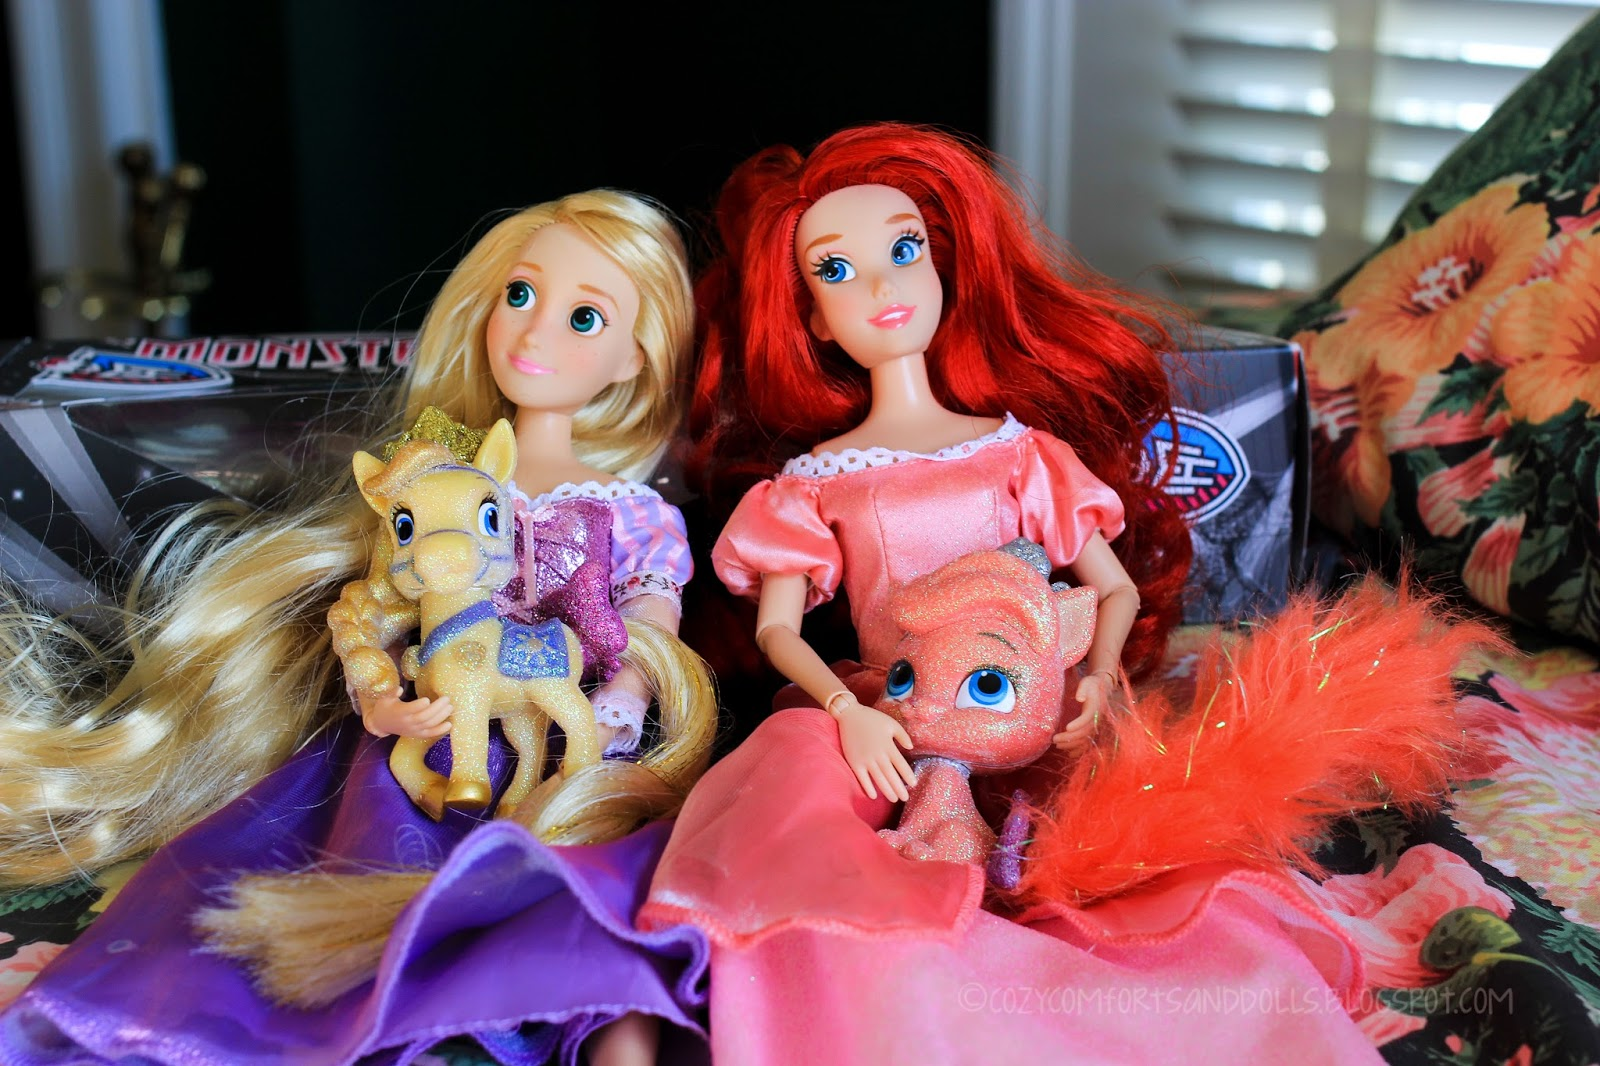 Todays Post Is About Some Older Dolls That Weve Had For A While I Just Wanted To Share The Girls Each Got These Christmas In 2014 And They